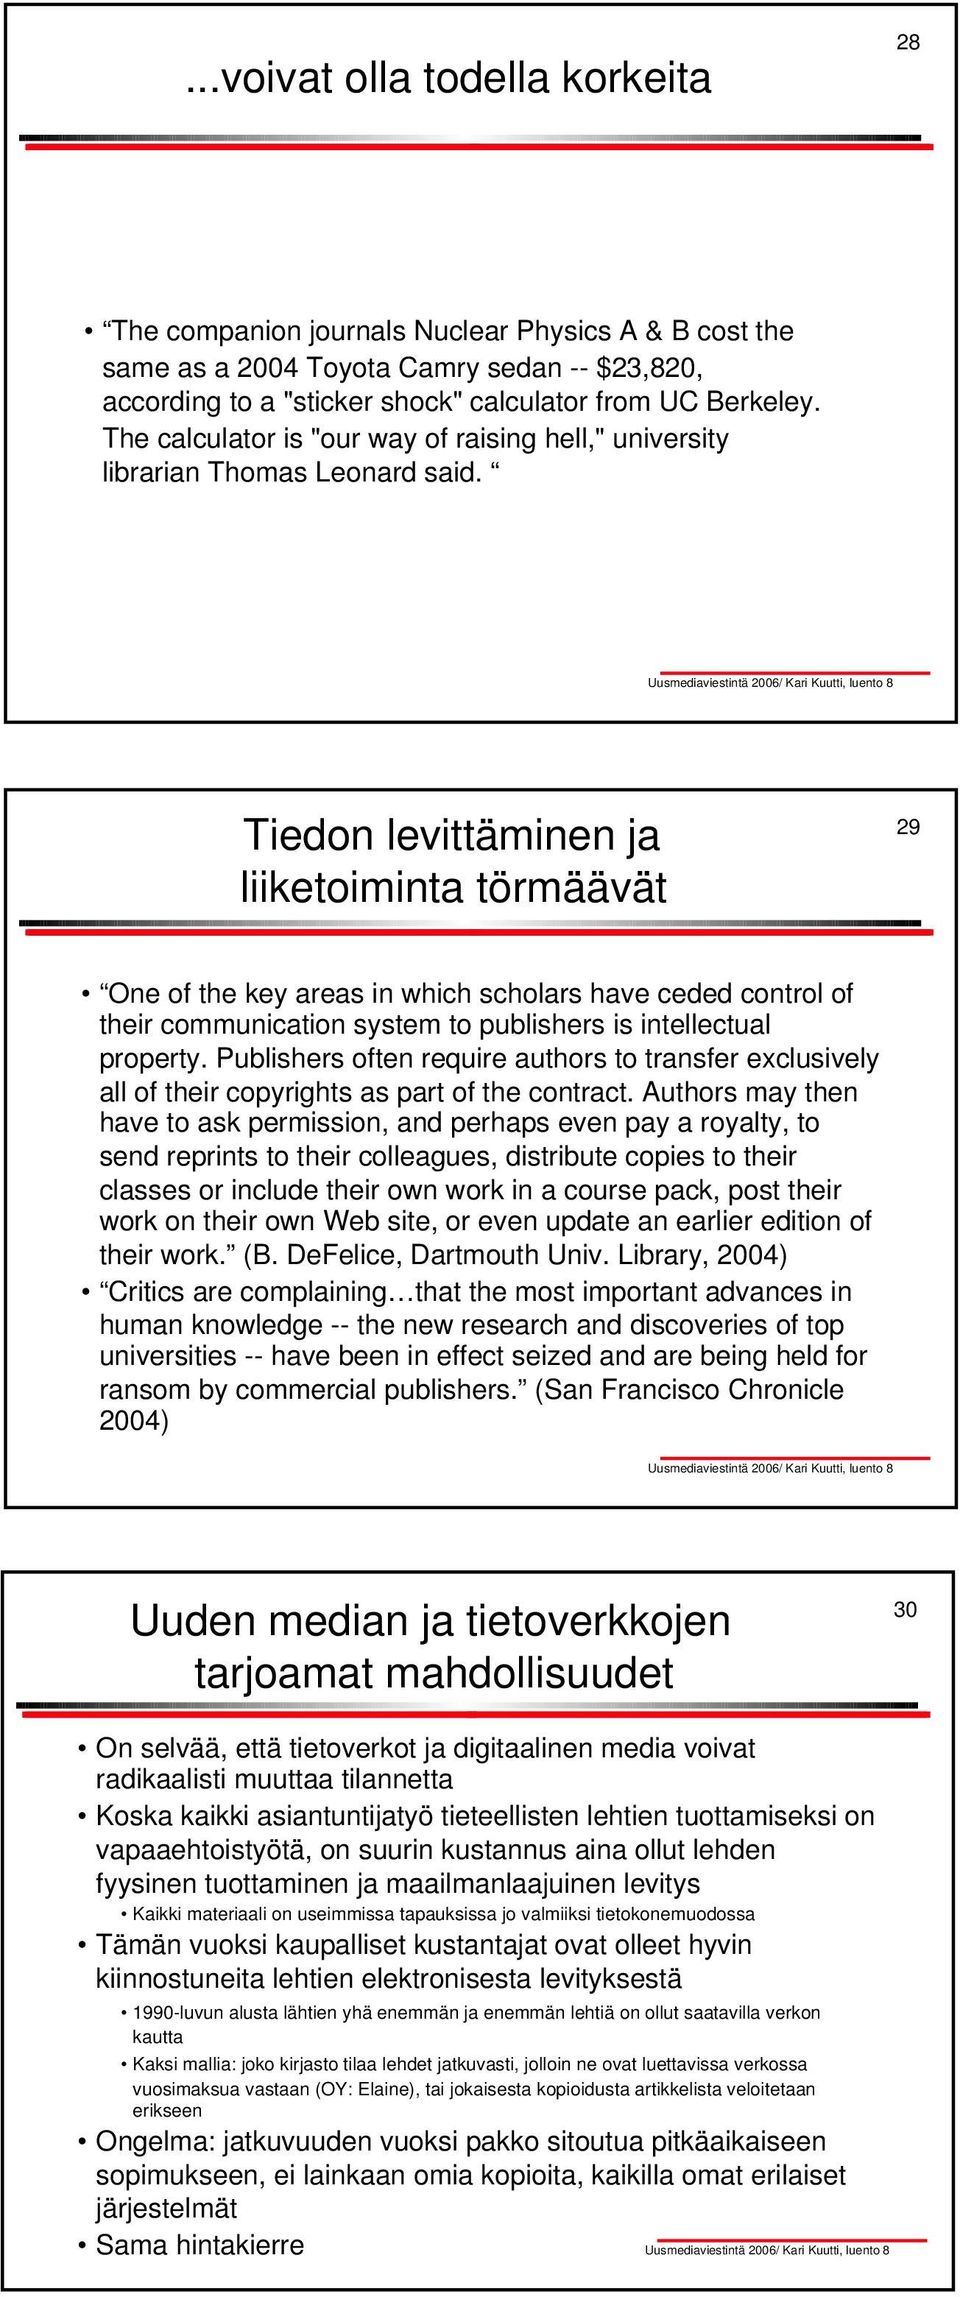 Tiedon levittäminen ja liiketoiminta törmäävät 29 One of the key areas in which scholars have ceded control of their communication system to publishers is intellectual property.